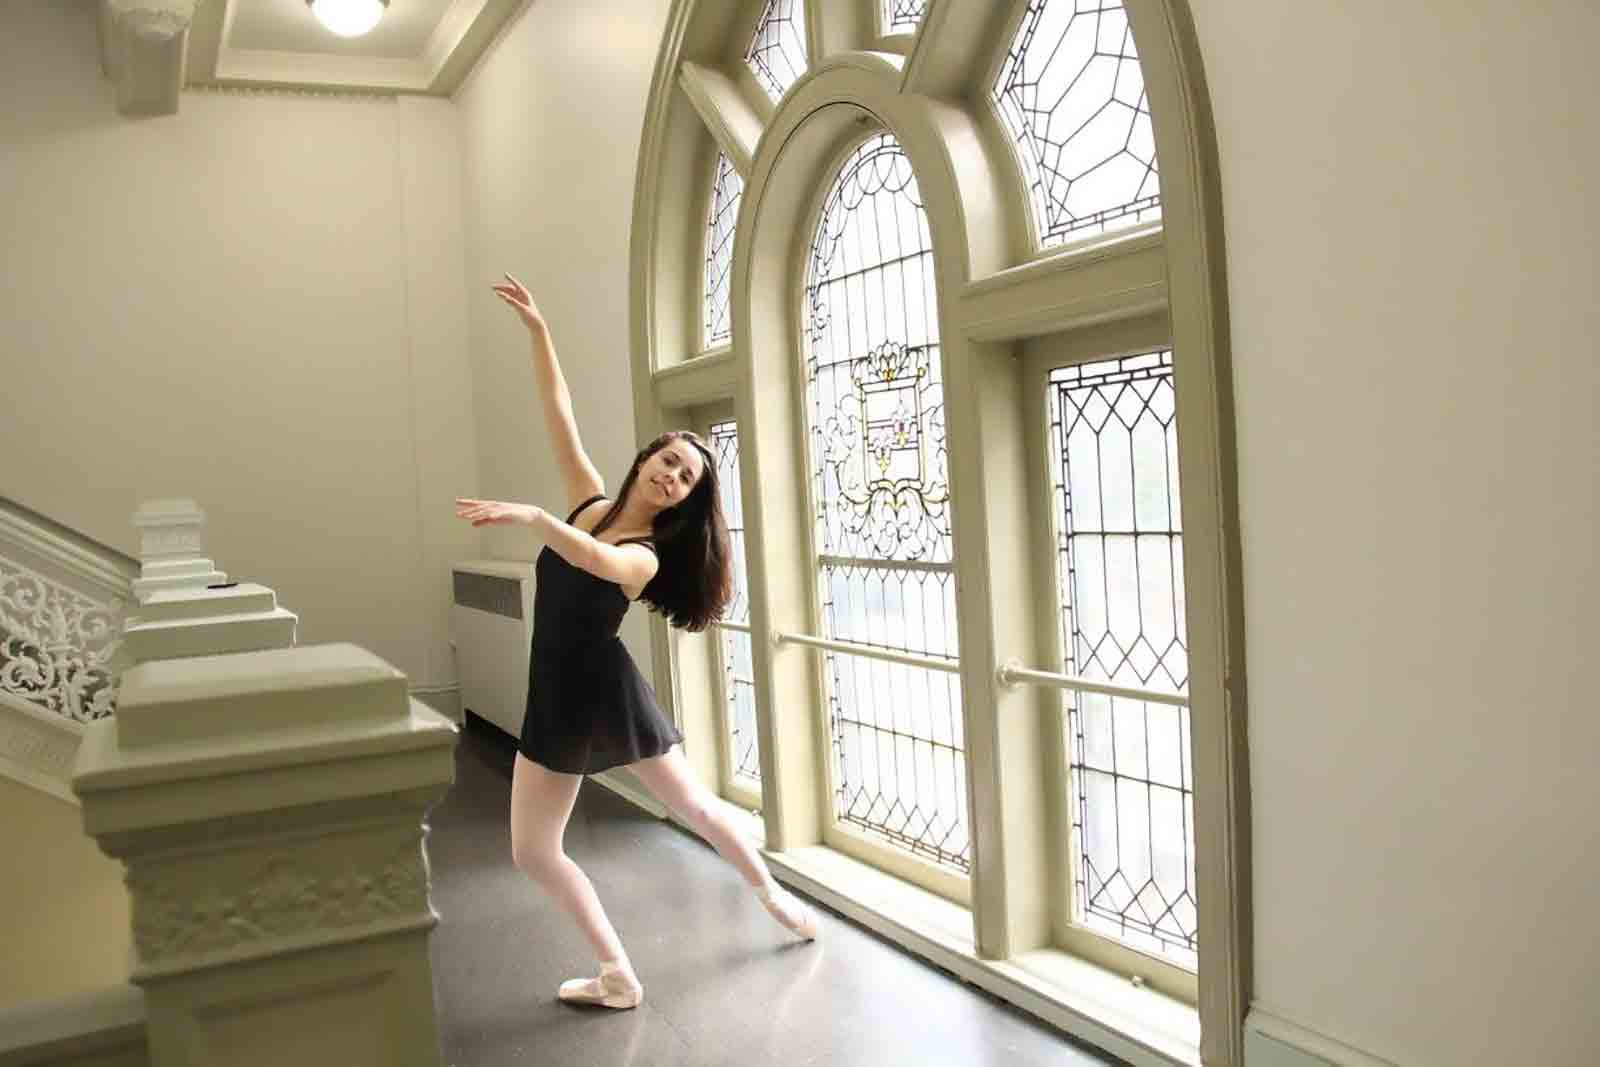 Young woman dancing near staircase